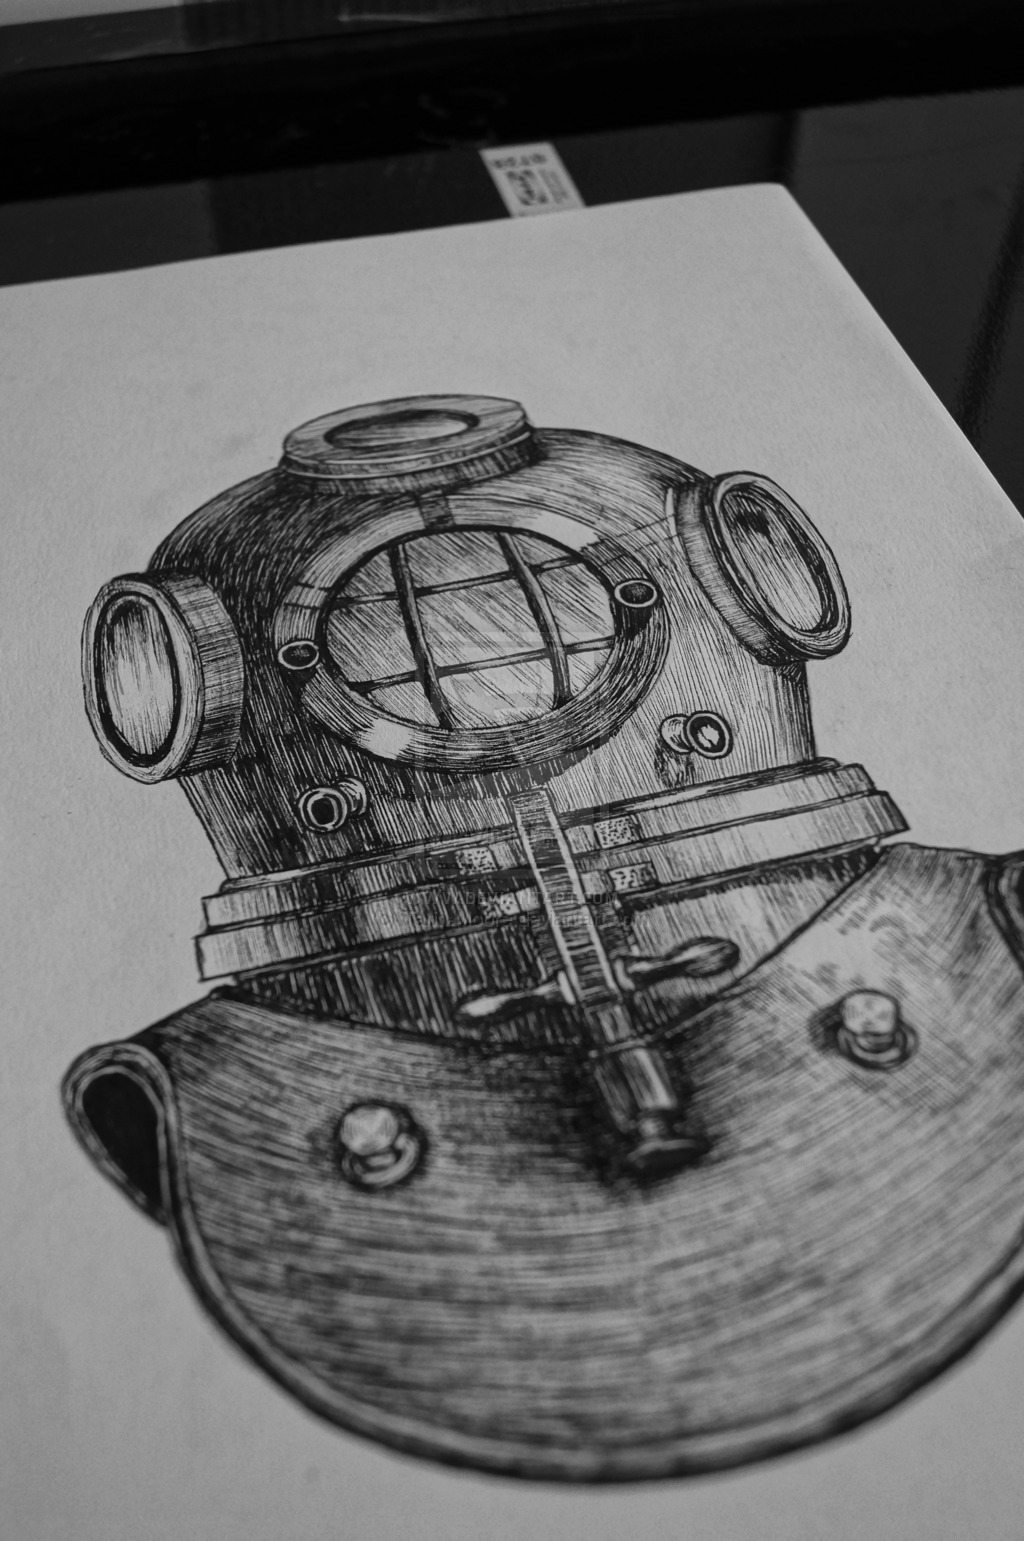 Deep Sea Divers Helmet Tattoo Design